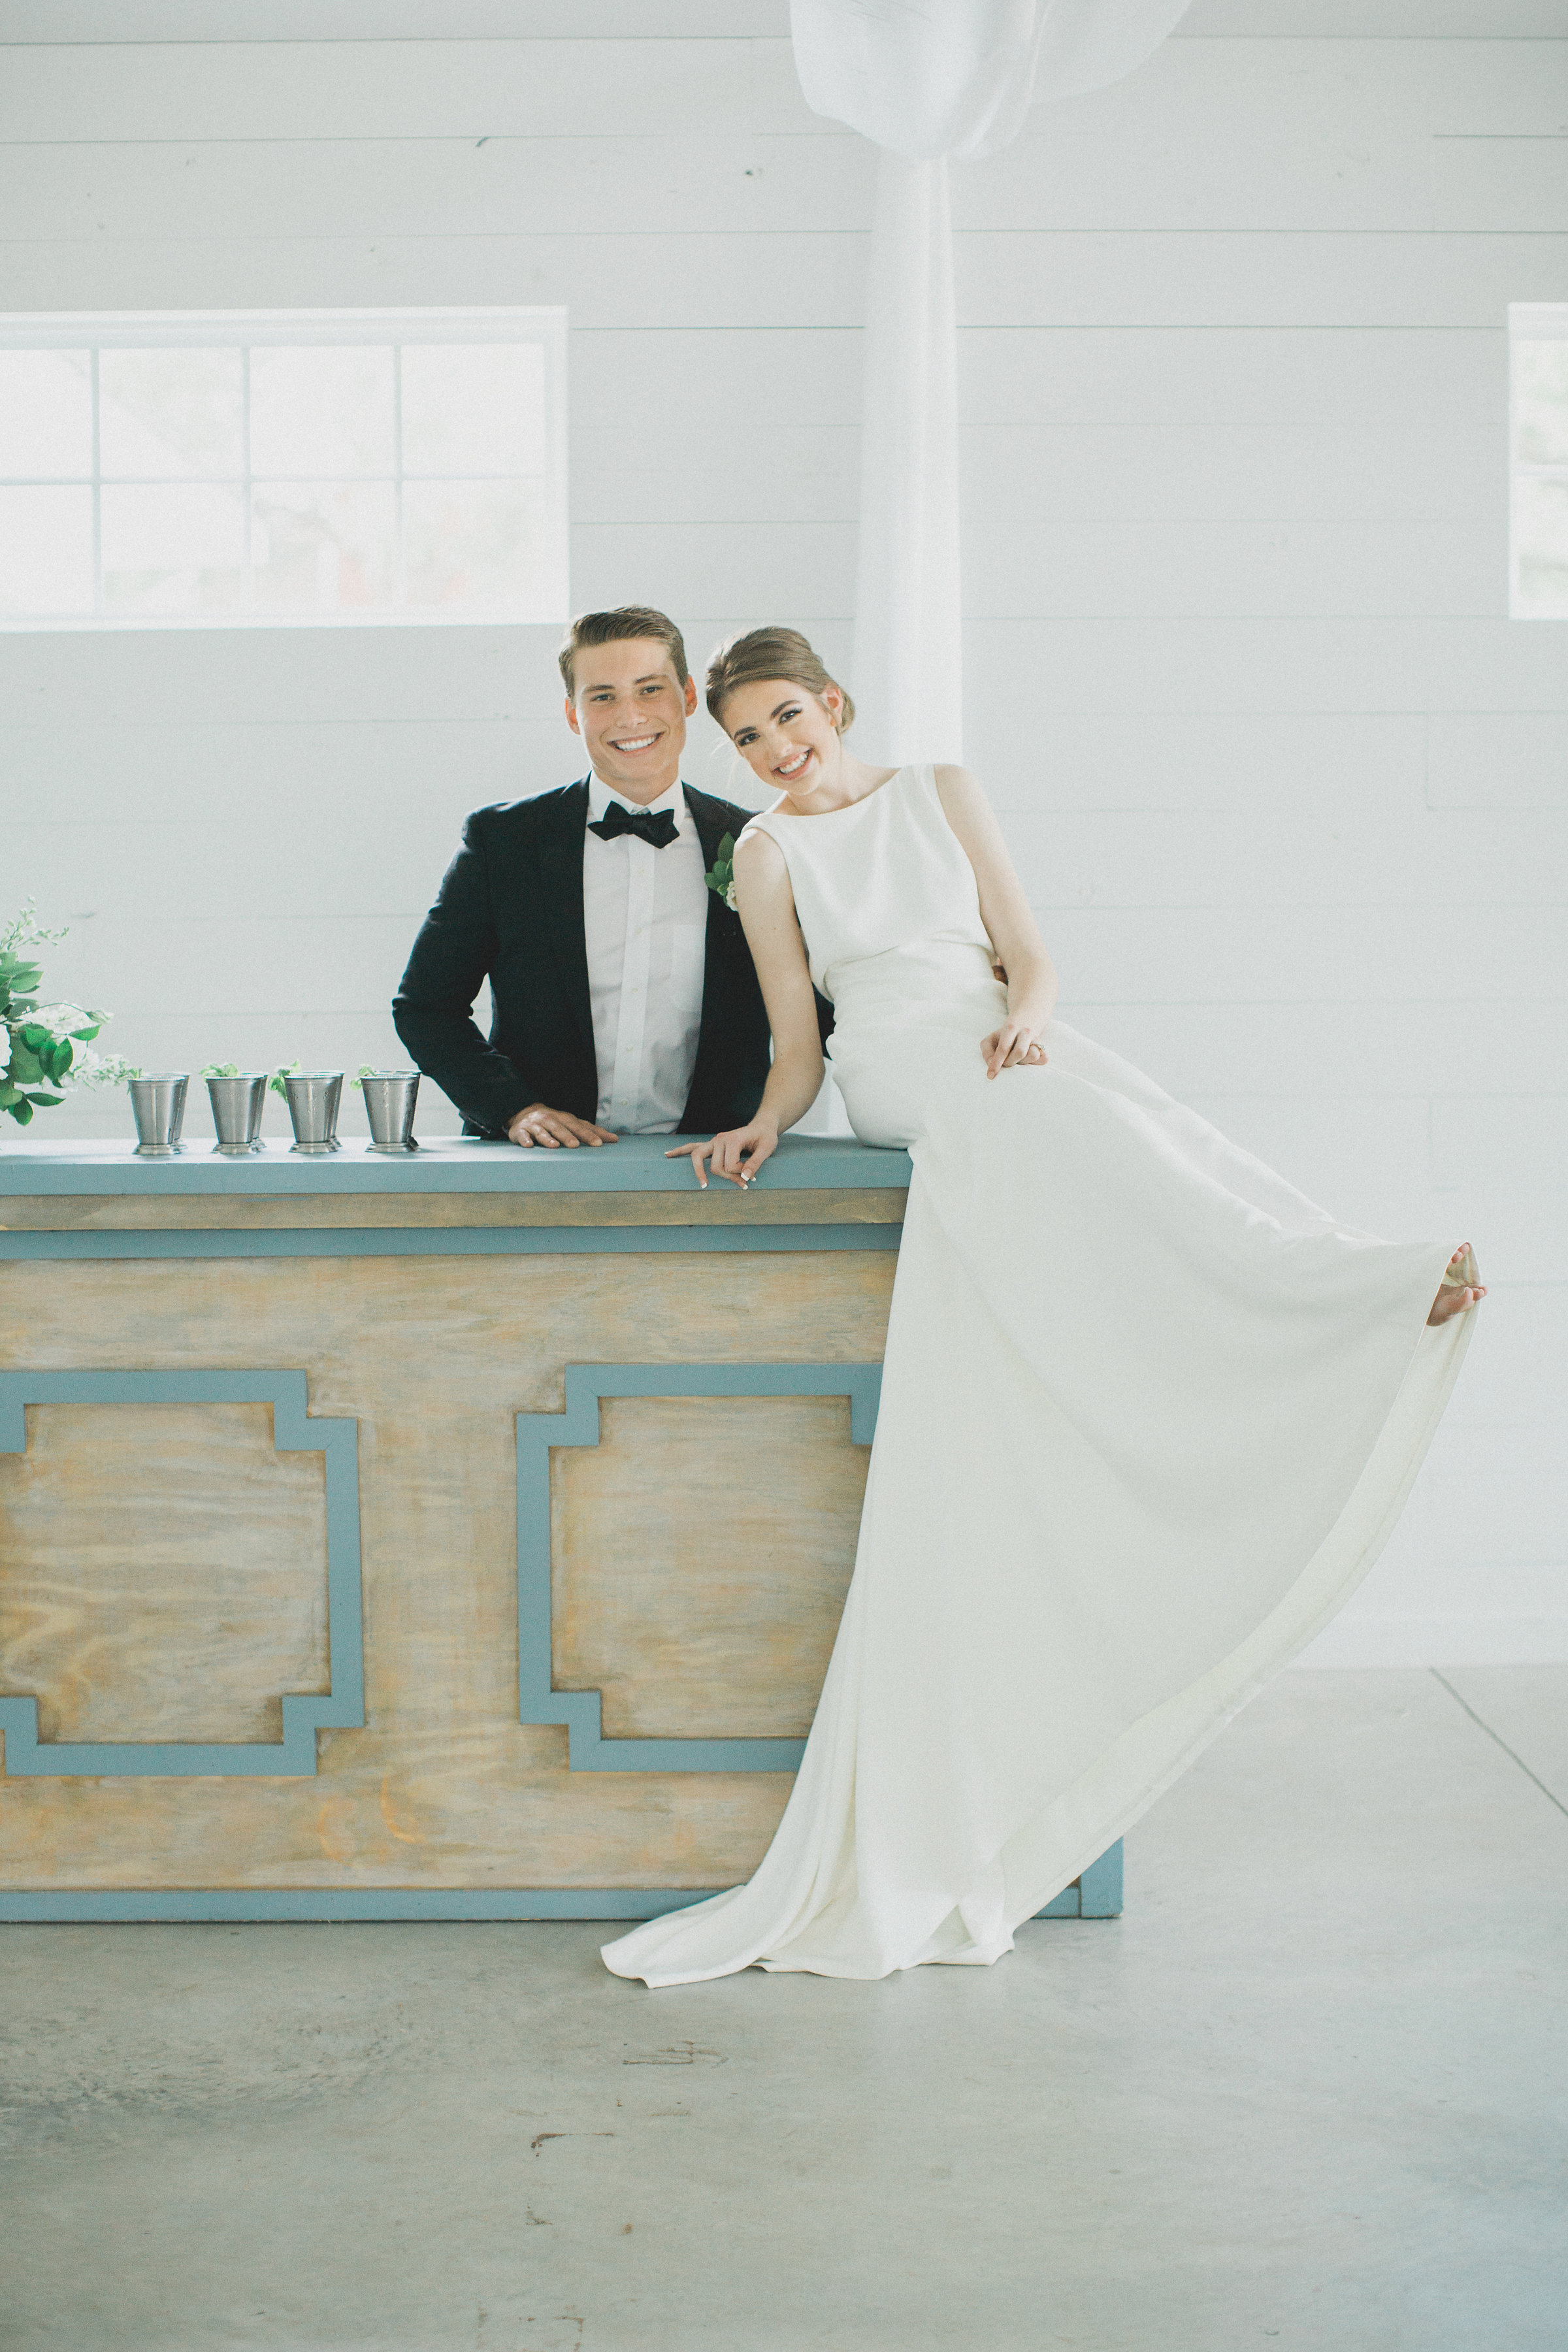 Custom Wedding Bar with Signature Cocktail Mint Juleps | Southern Summer White Barn Wedding in Dallas, TX